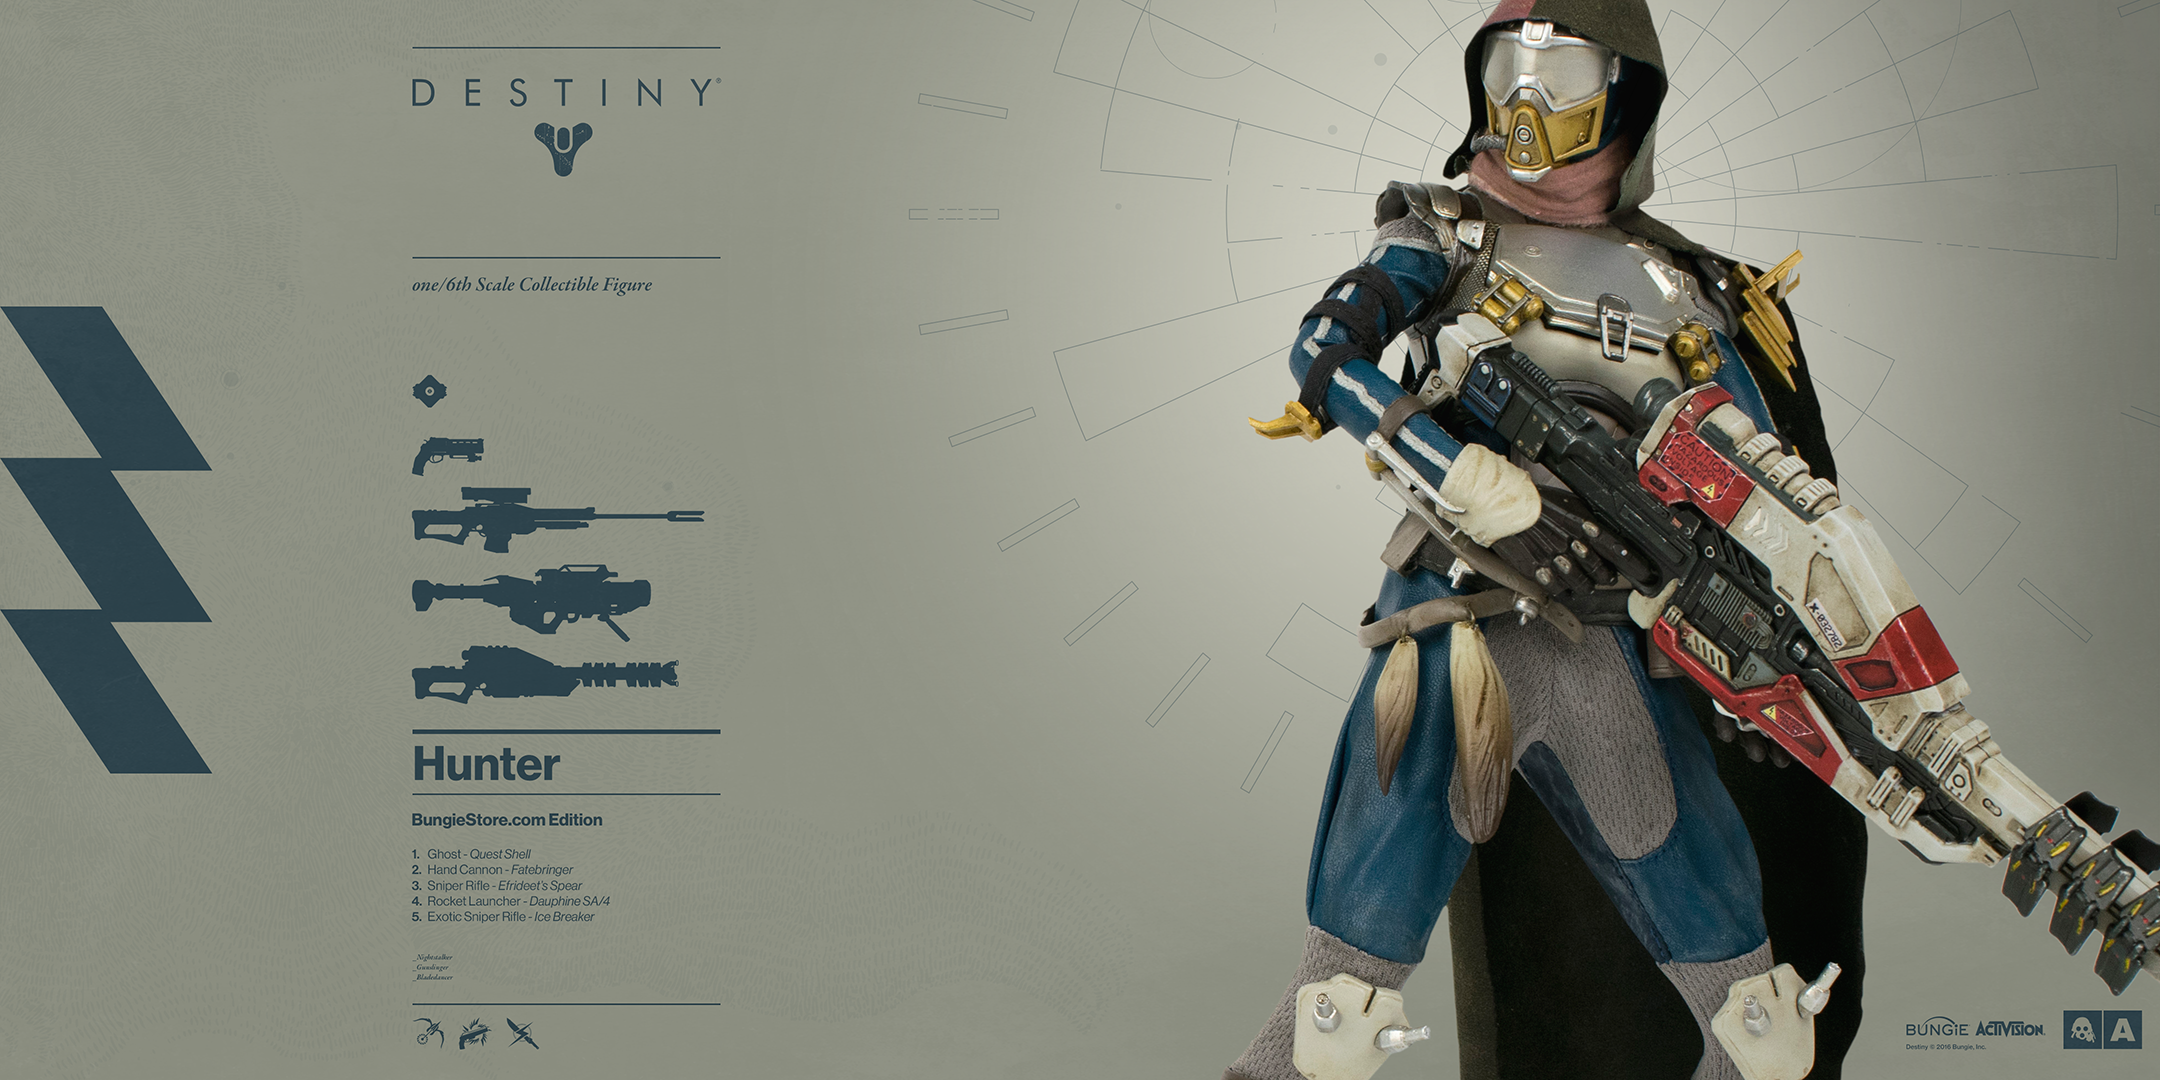 3A_Destiny_Hunter_BungieStoreEdition_Landscape_Right_v002.png